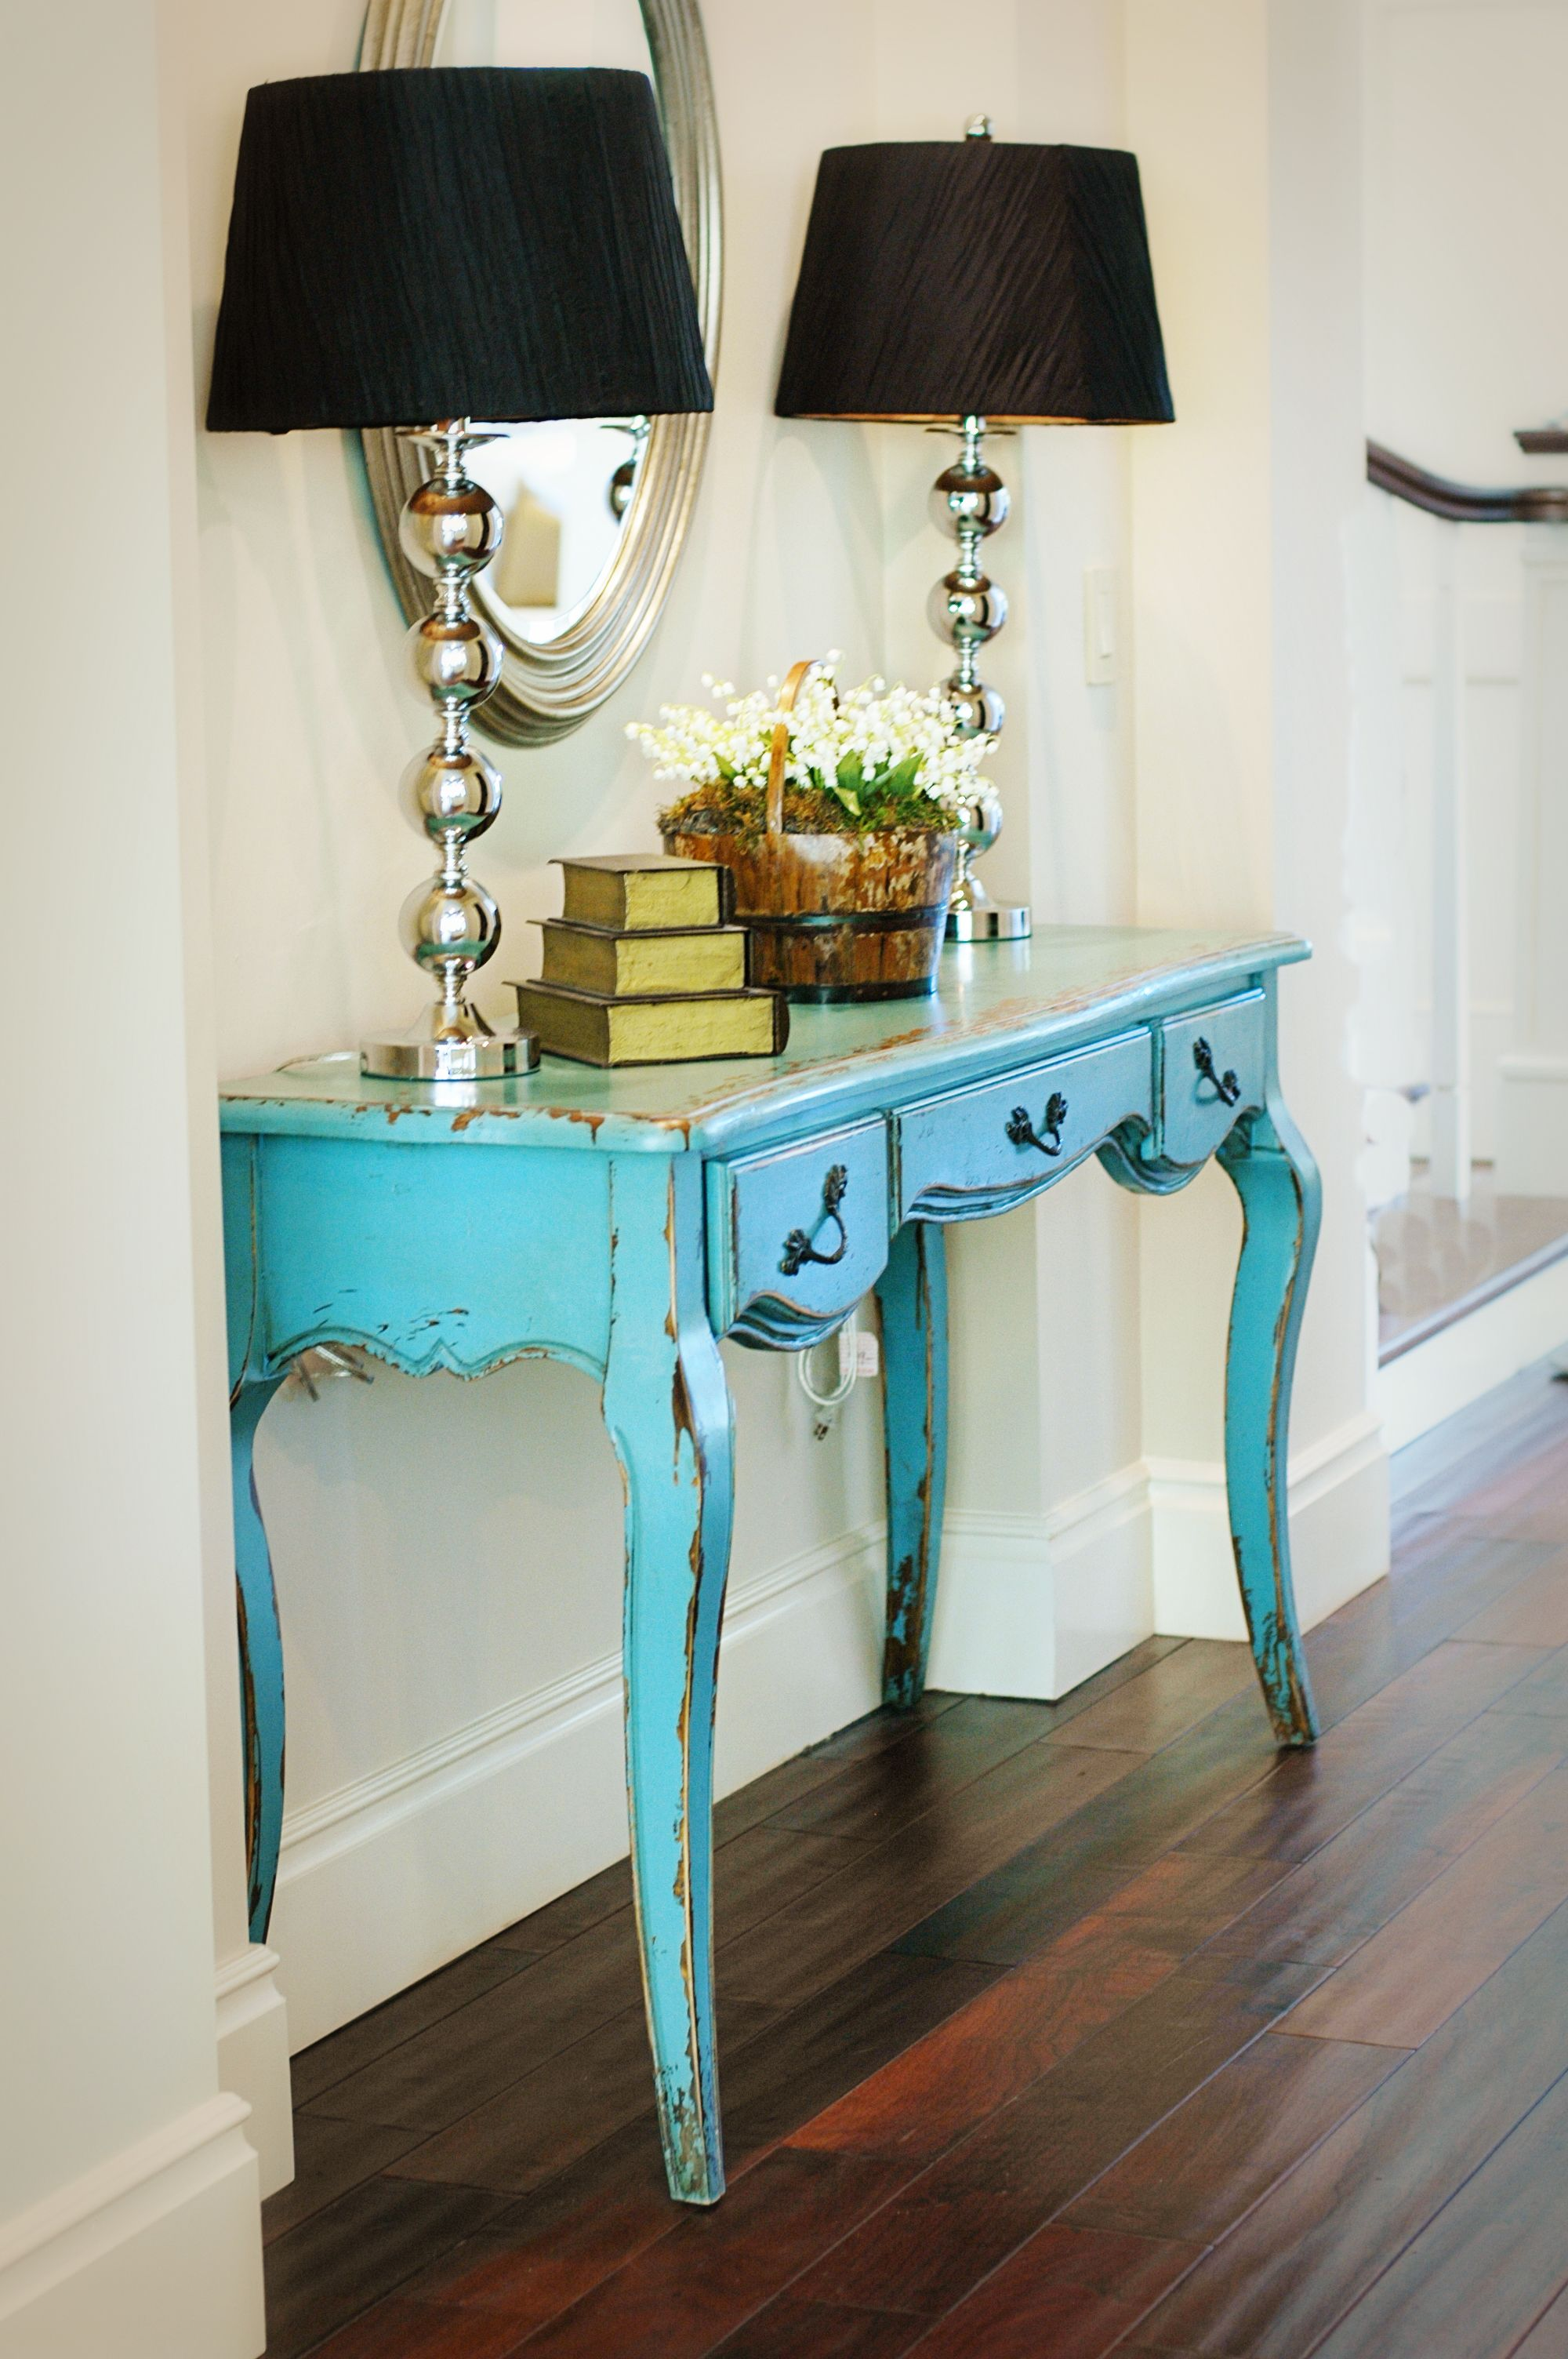 Distressed Teal Table With More Modern Looking Lamps. Great Use Of Entryway  Space. Similar